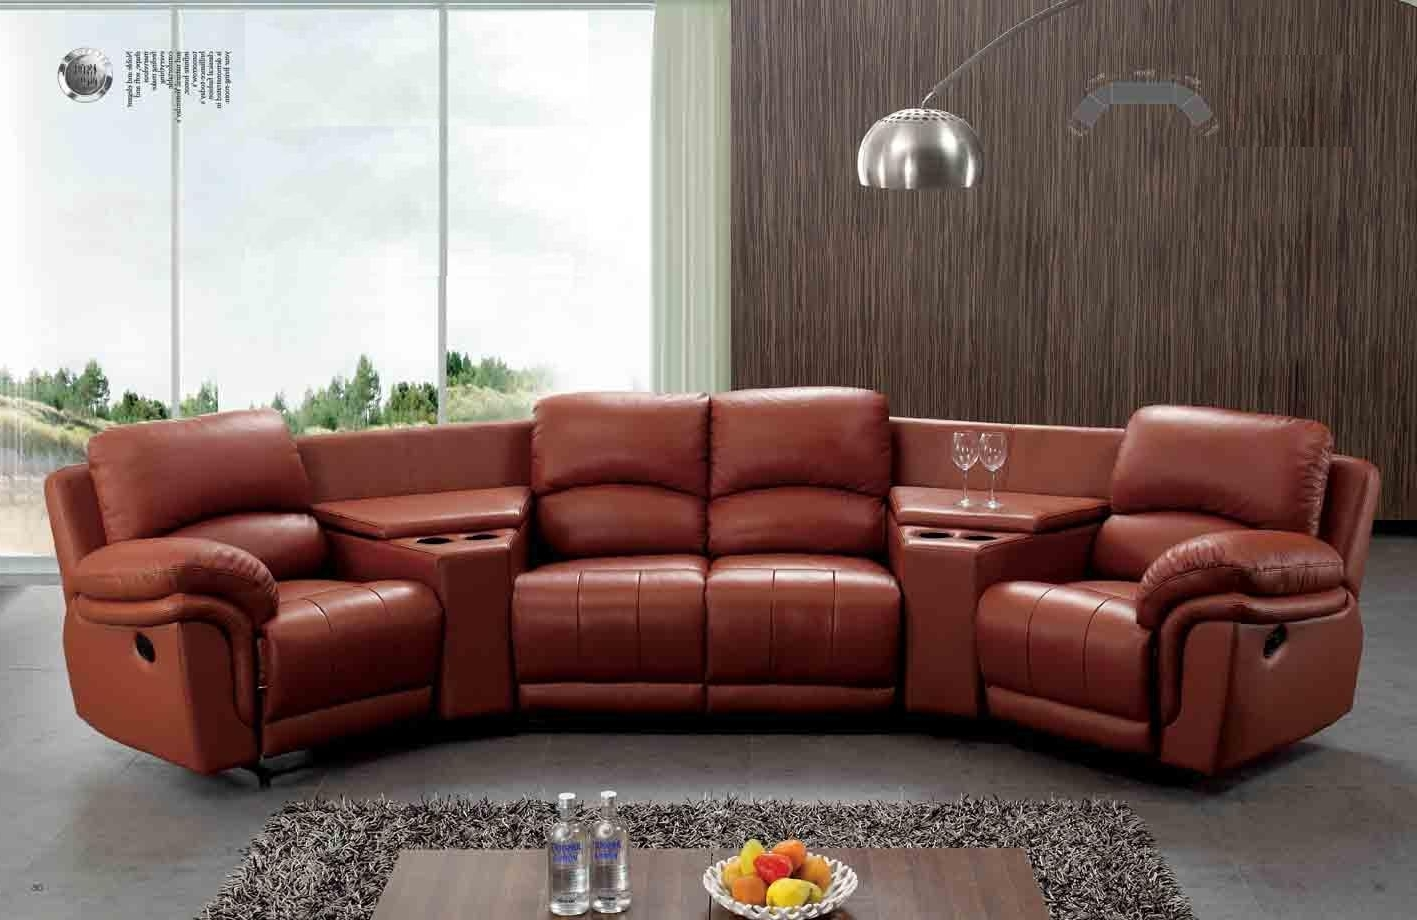 Recliner Sofas 4U (View 10 of 15)